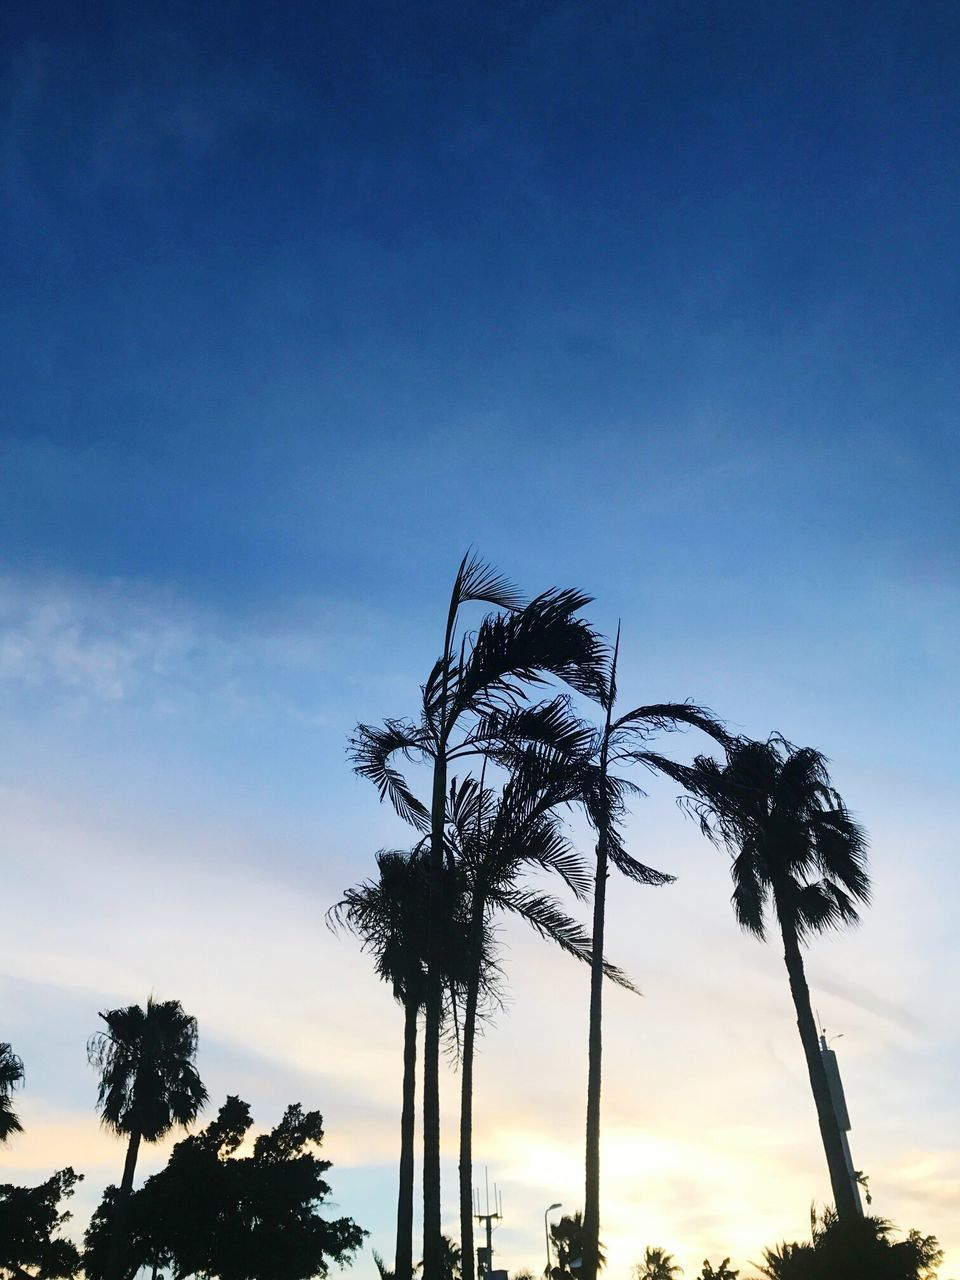 tree, palm tree, low angle view, silhouette, sky, beauty in nature, tree trunk, nature, scenics, sunset, outdoors, no people, growth, tranquil scene, tranquility, blue, day